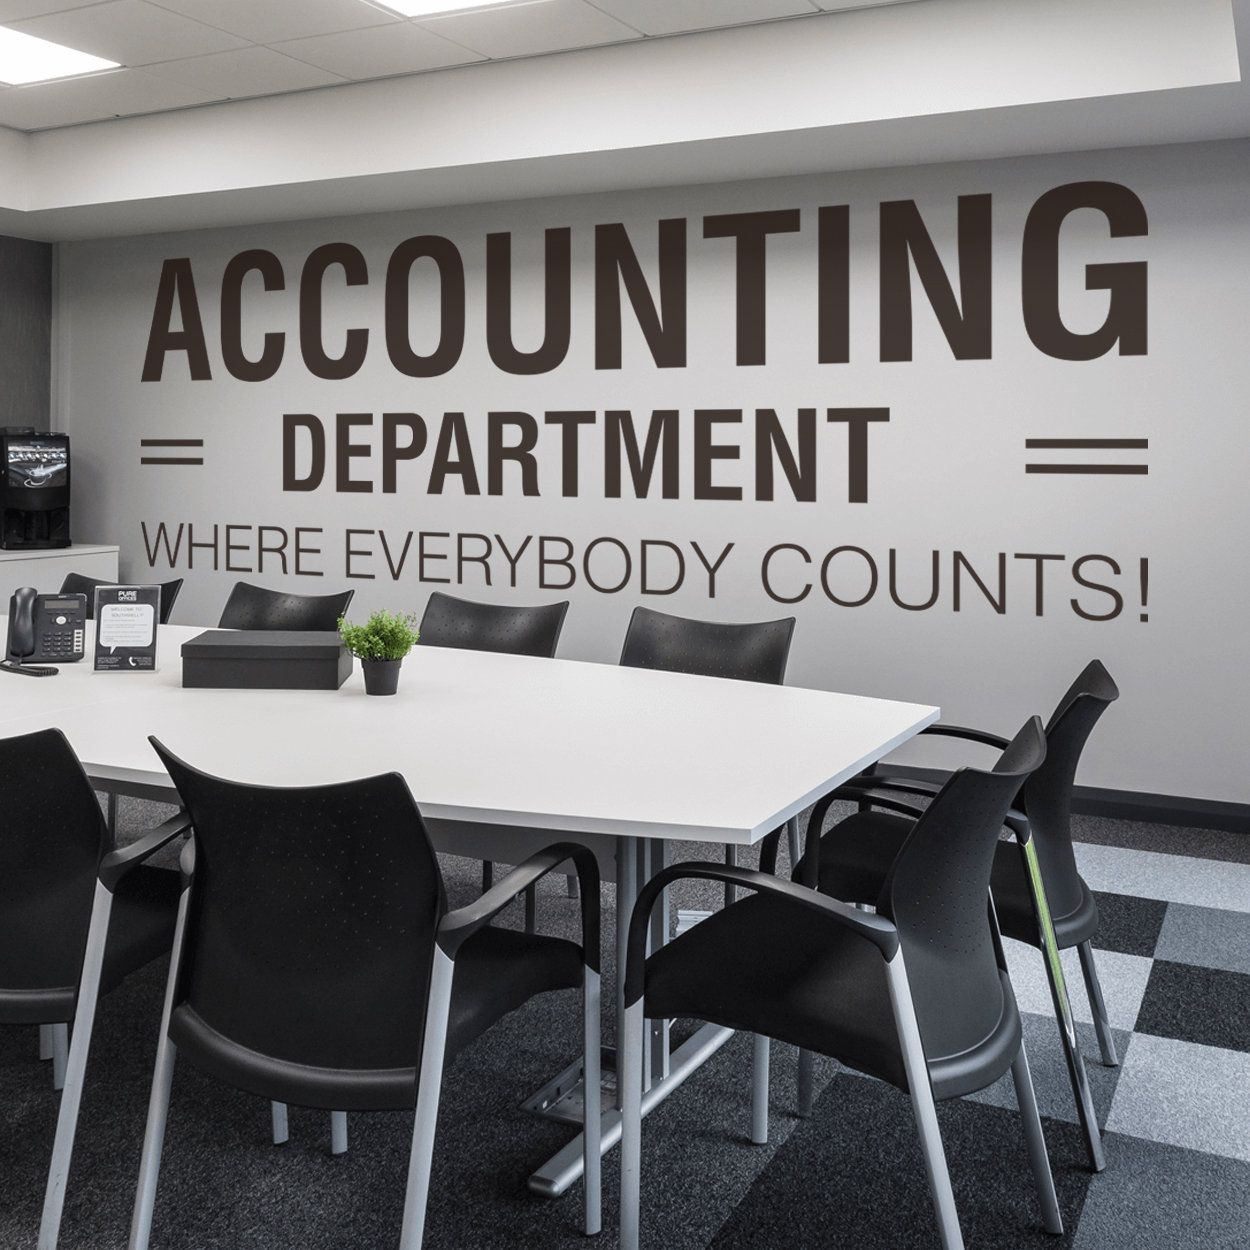 Accounting Department Office Office Wall Art Wall Decal Etsy Office Wall Art Office Walls Office Wall Design